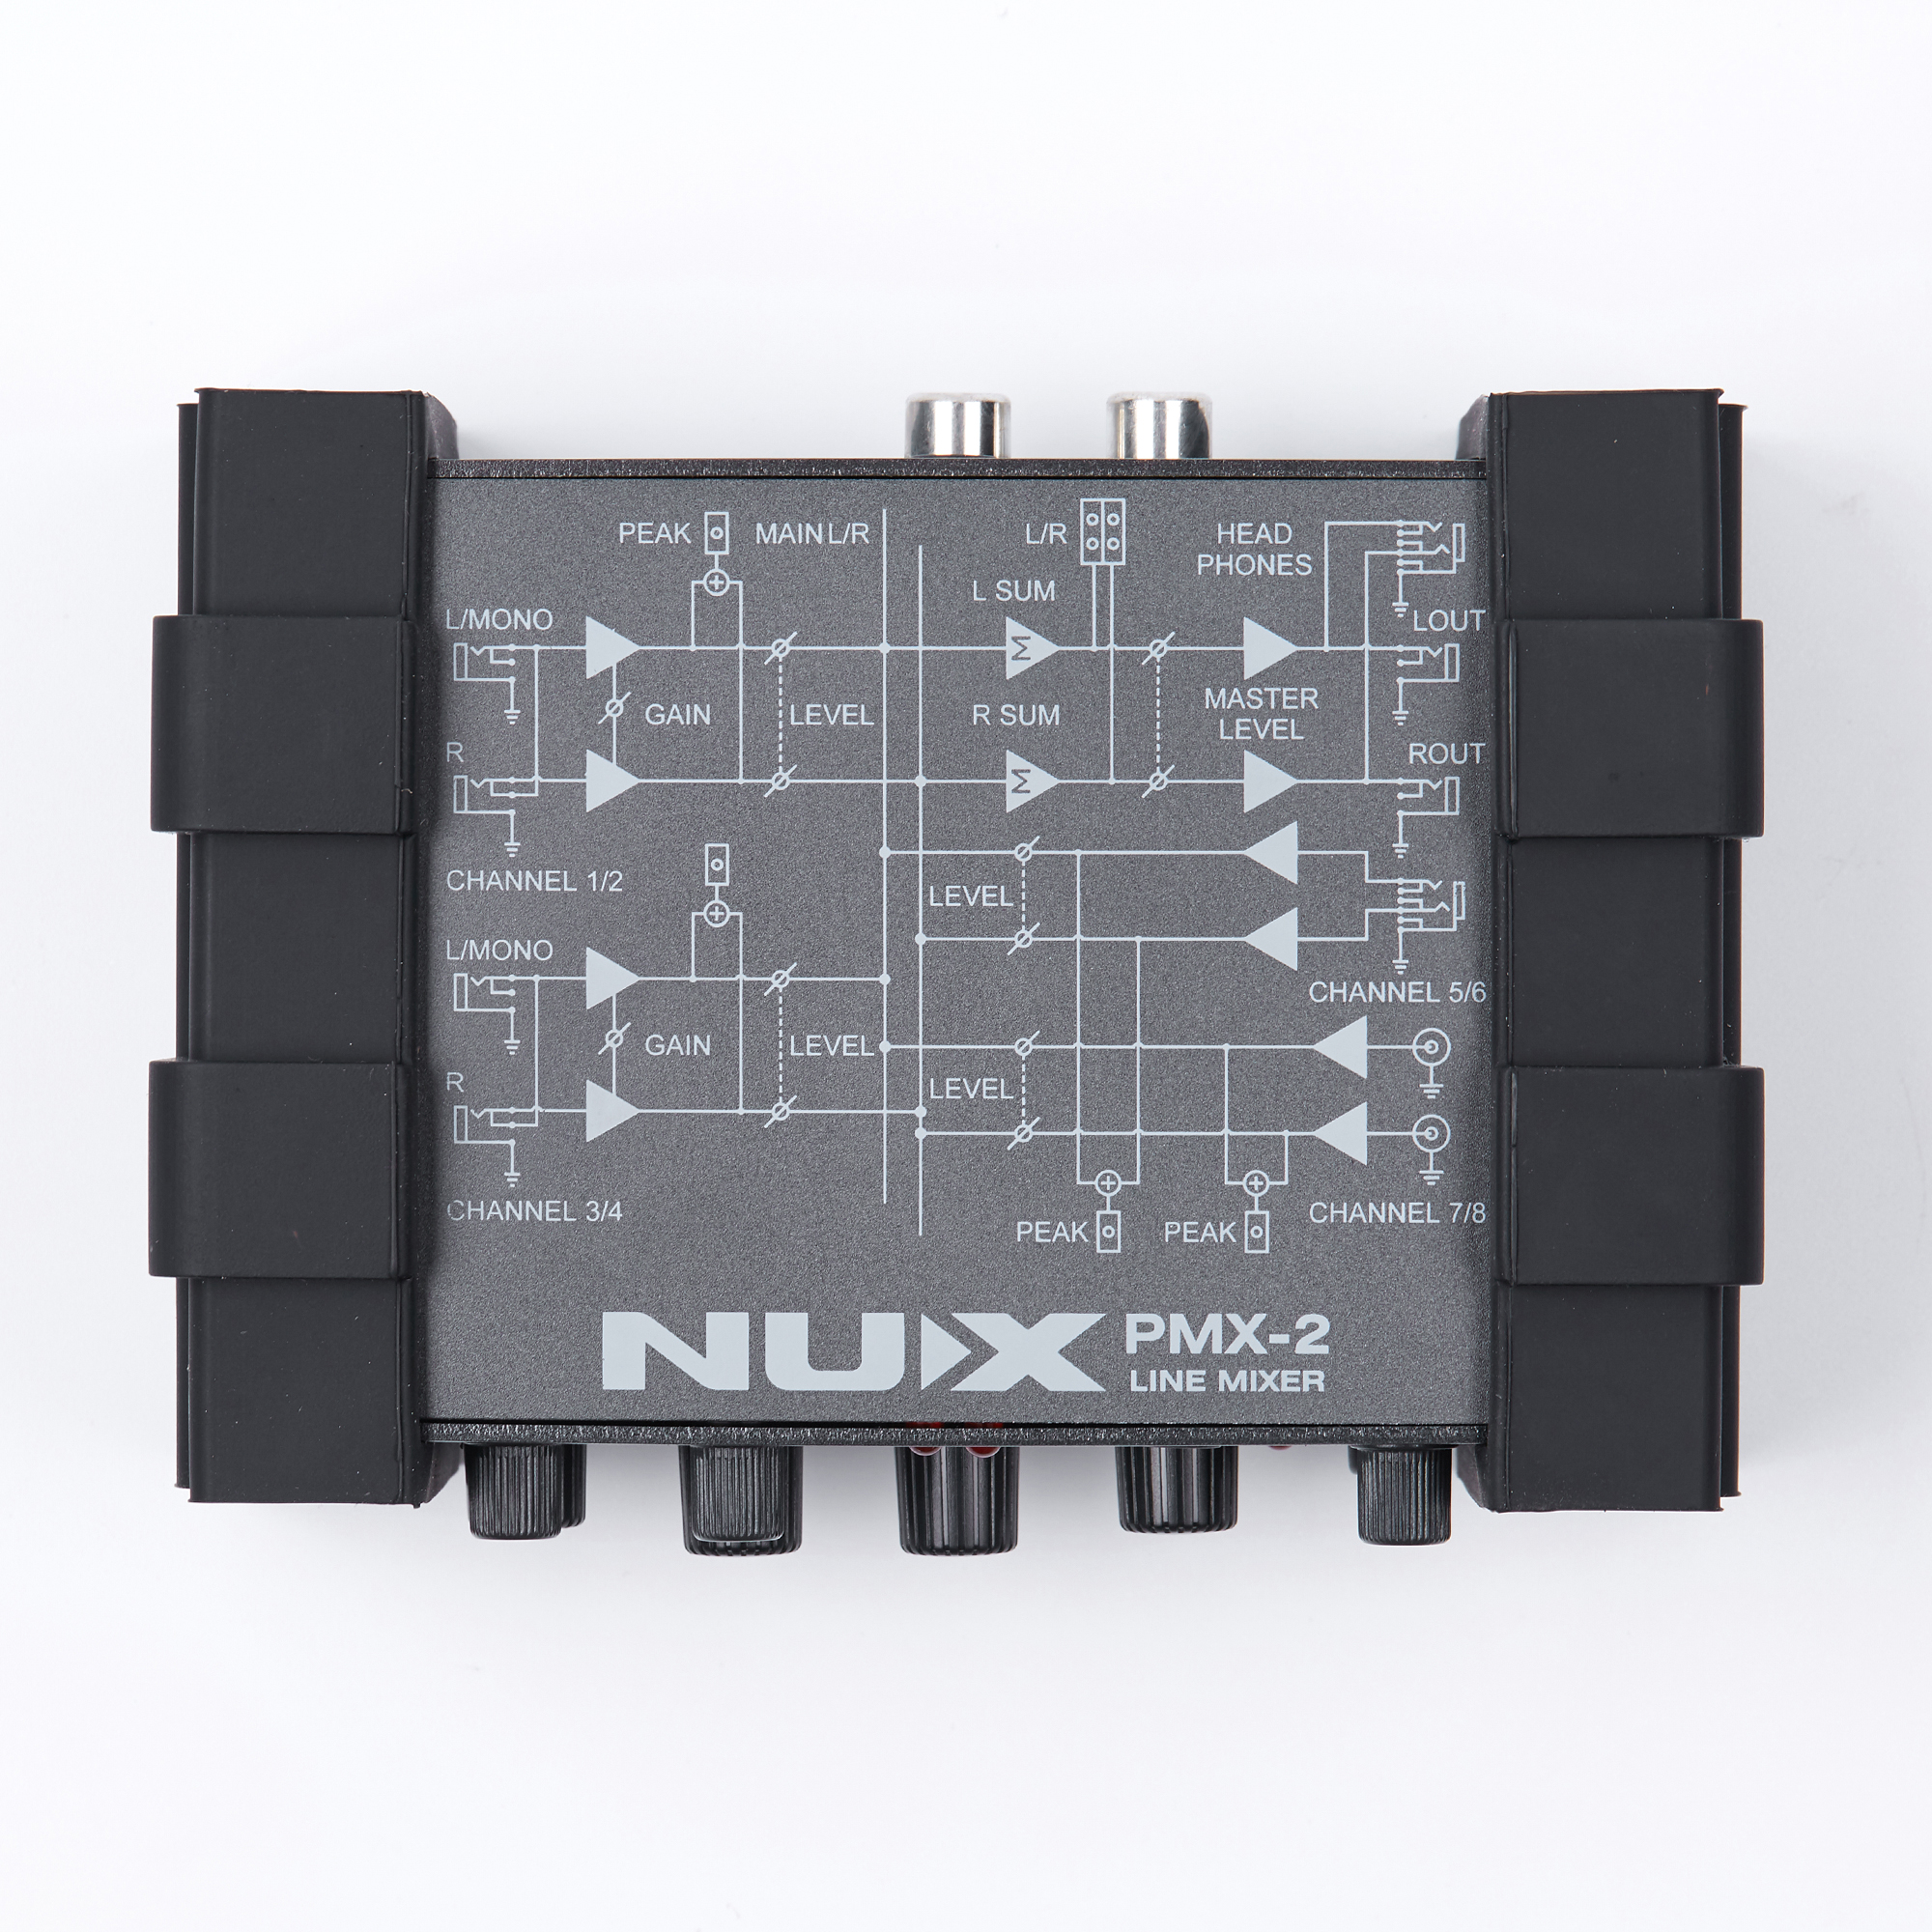 Gain Control 8 Inputs and 2 Outputs NUX PMX-2 Multi-Channel Mini Mixer 30 Musical Instruments Accessories for Guitar Bass Player carlos rivera mexico